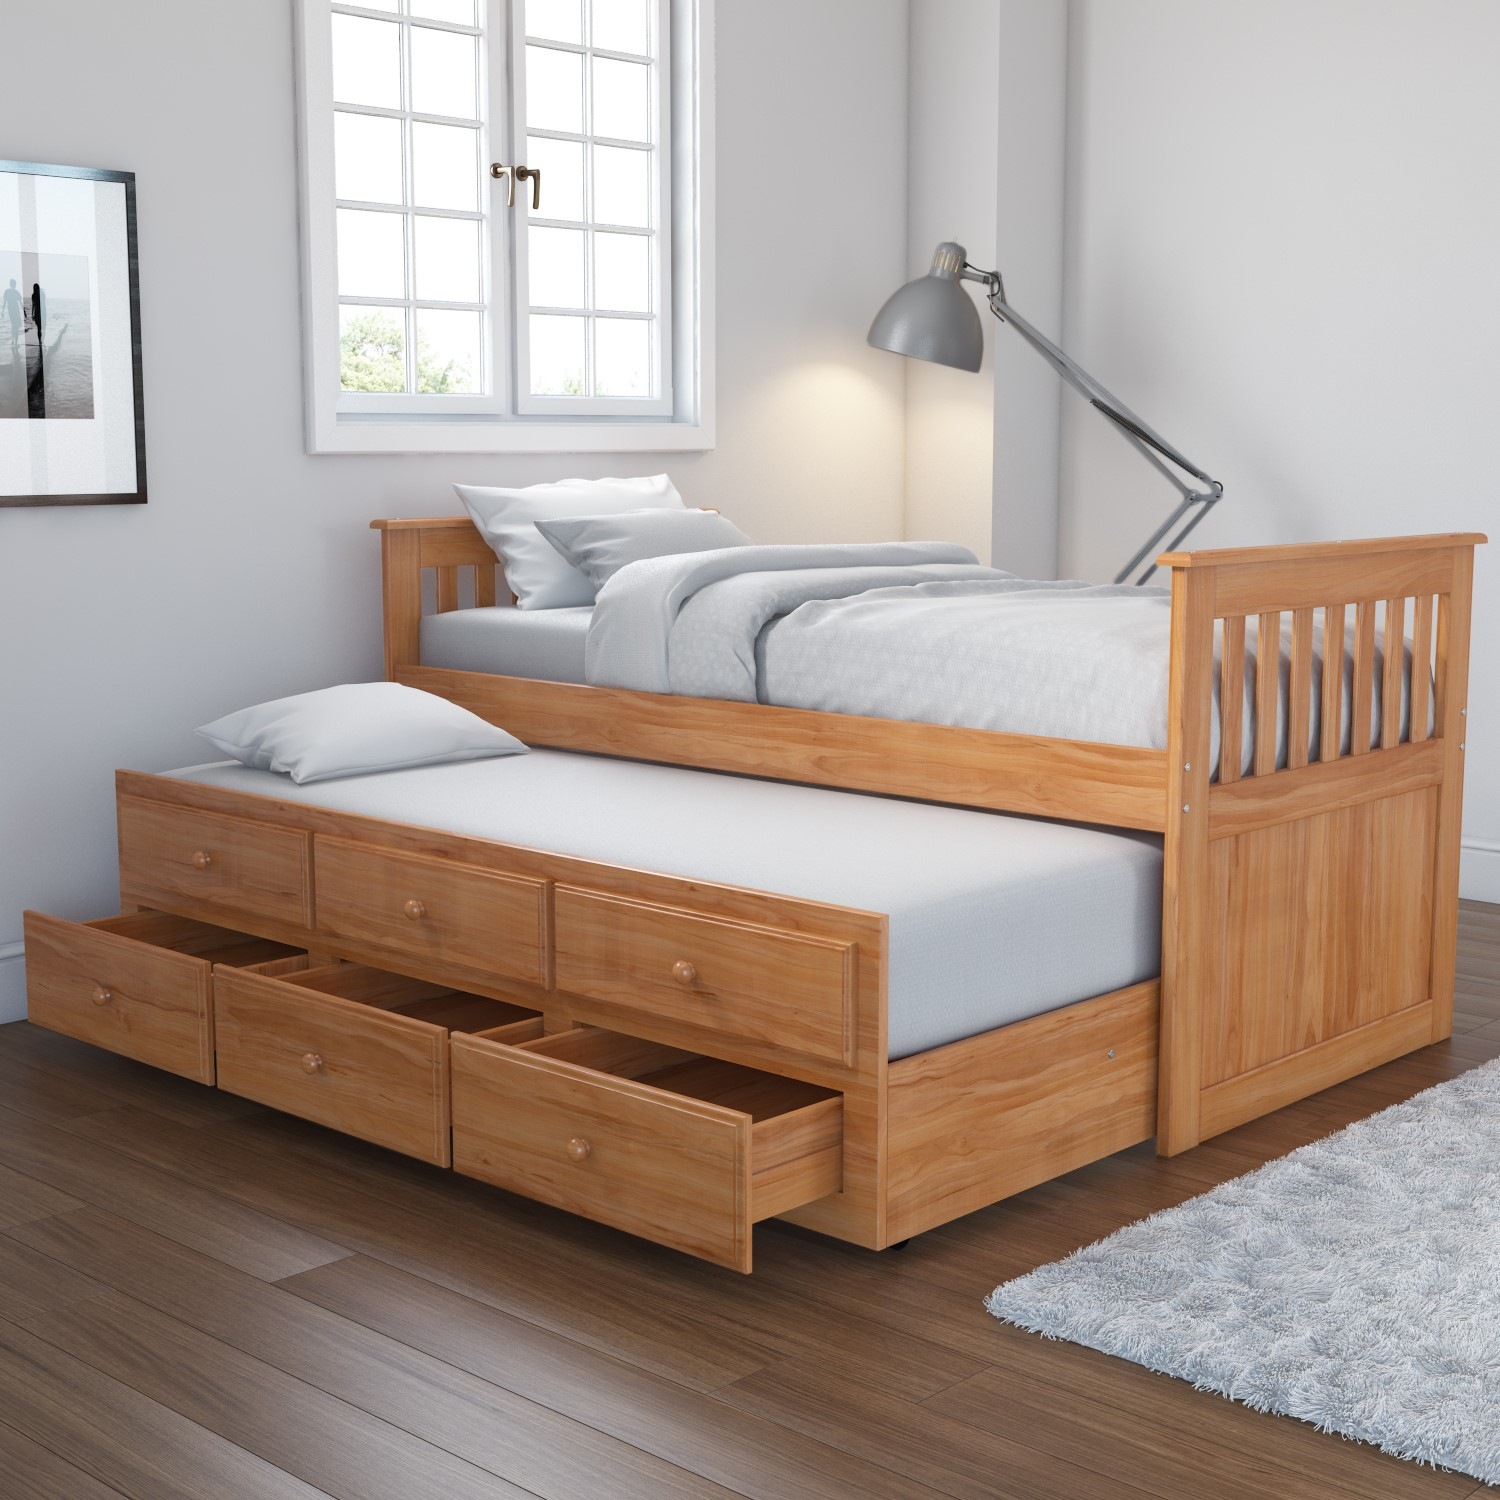 Picture of: Pine Guest Bed Wood Pull Out Trundle 3 Drawer Storage Single 3ft Ebay